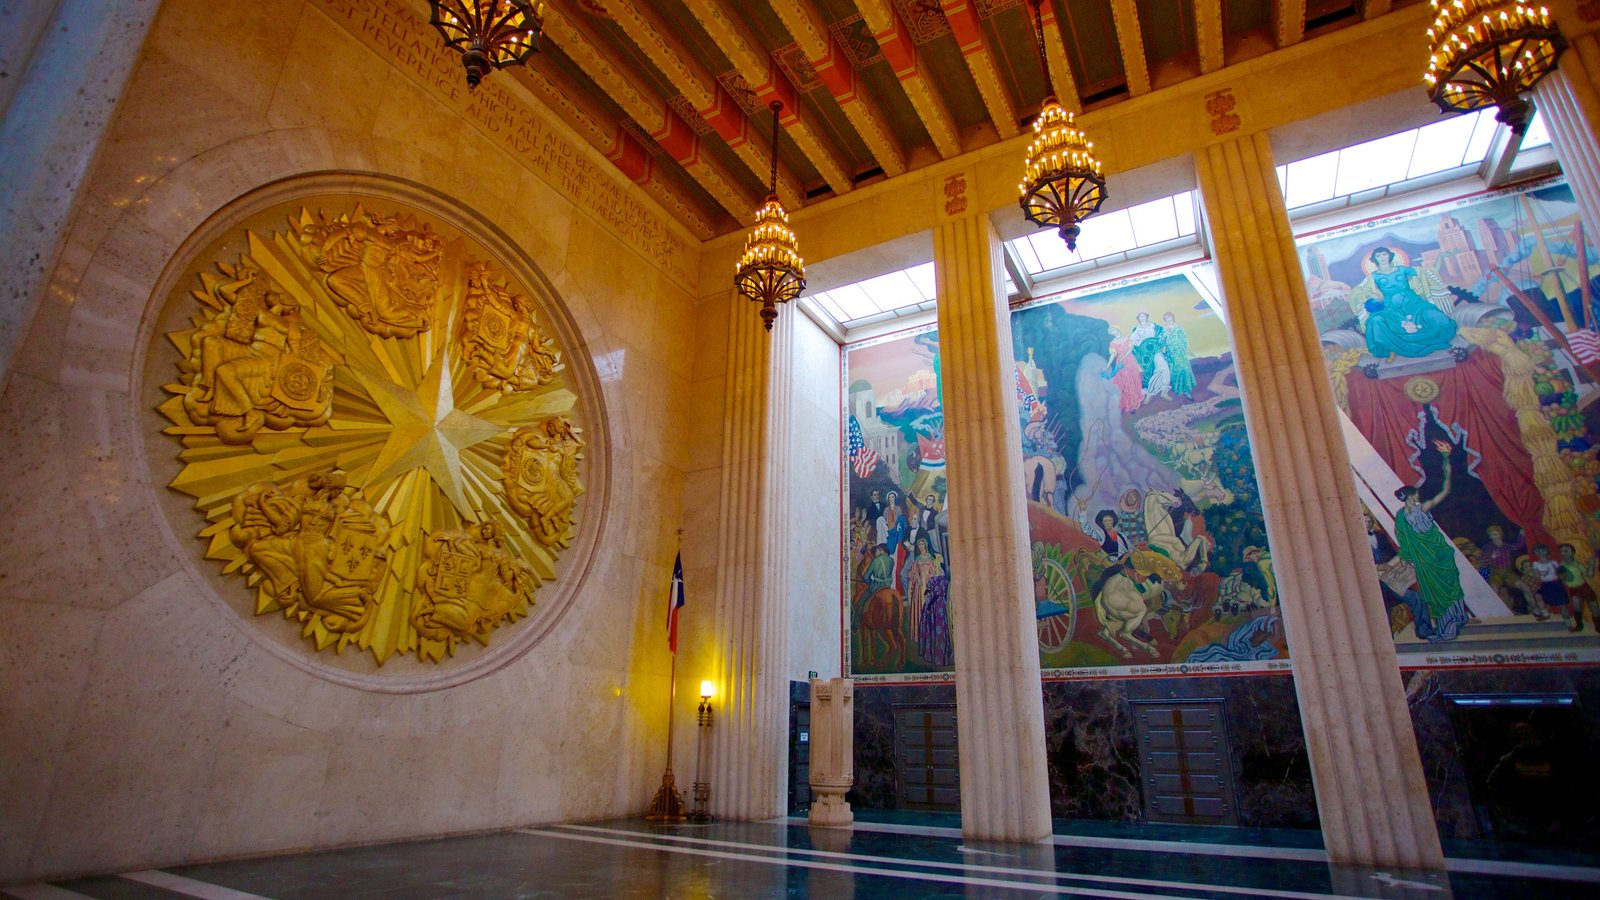 Hall of State which includes interior views and art